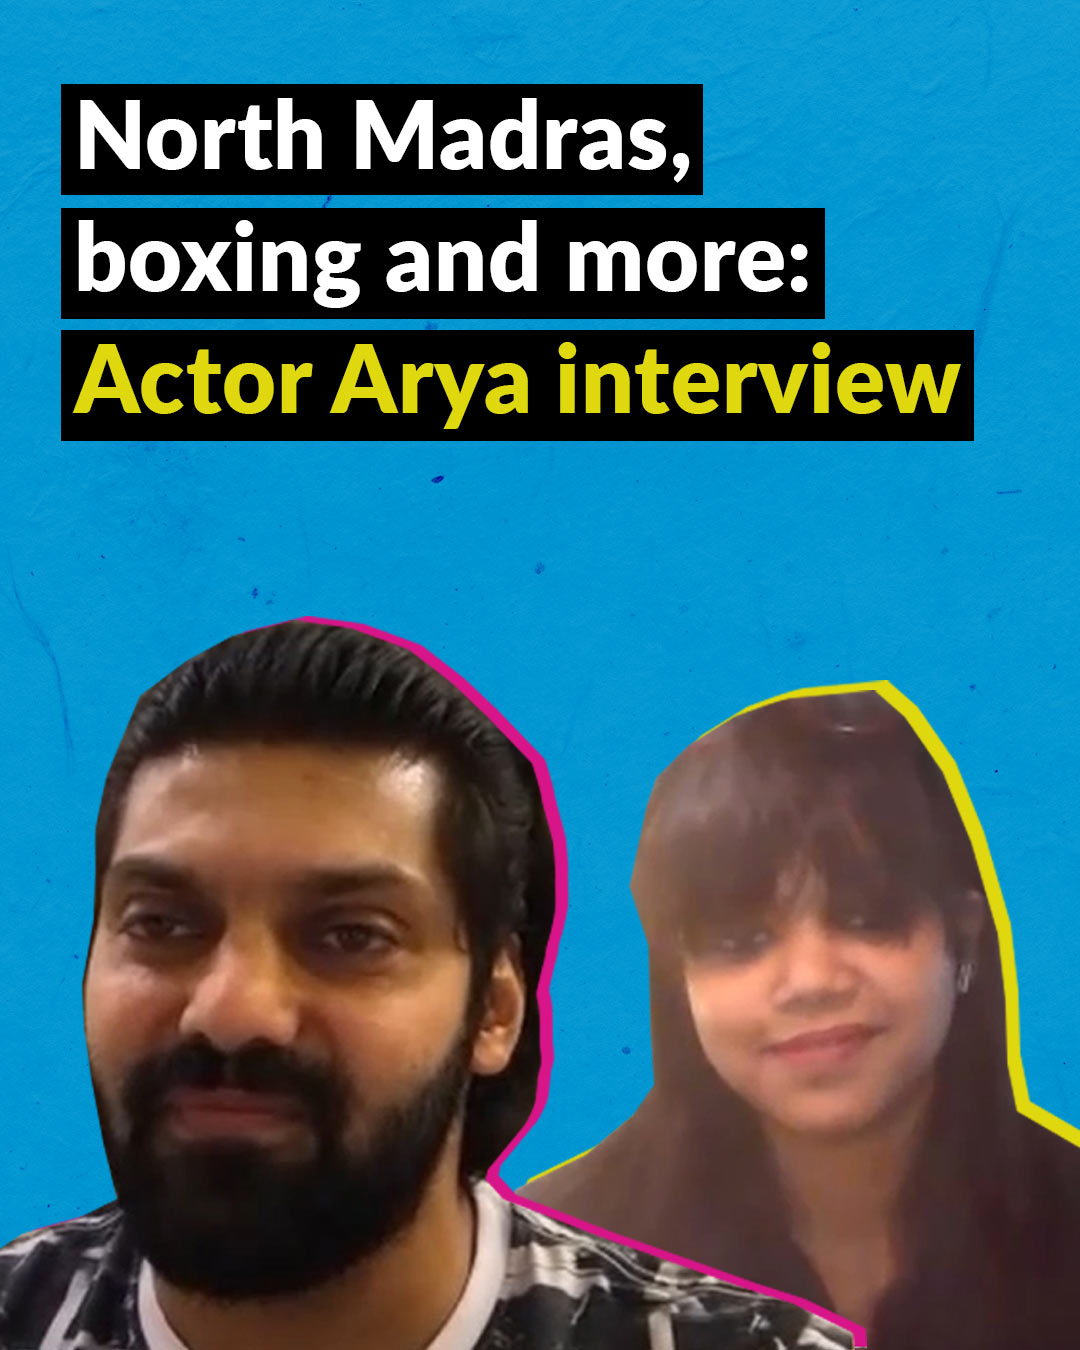 North Madras, boxing and more: Actor Arya interview